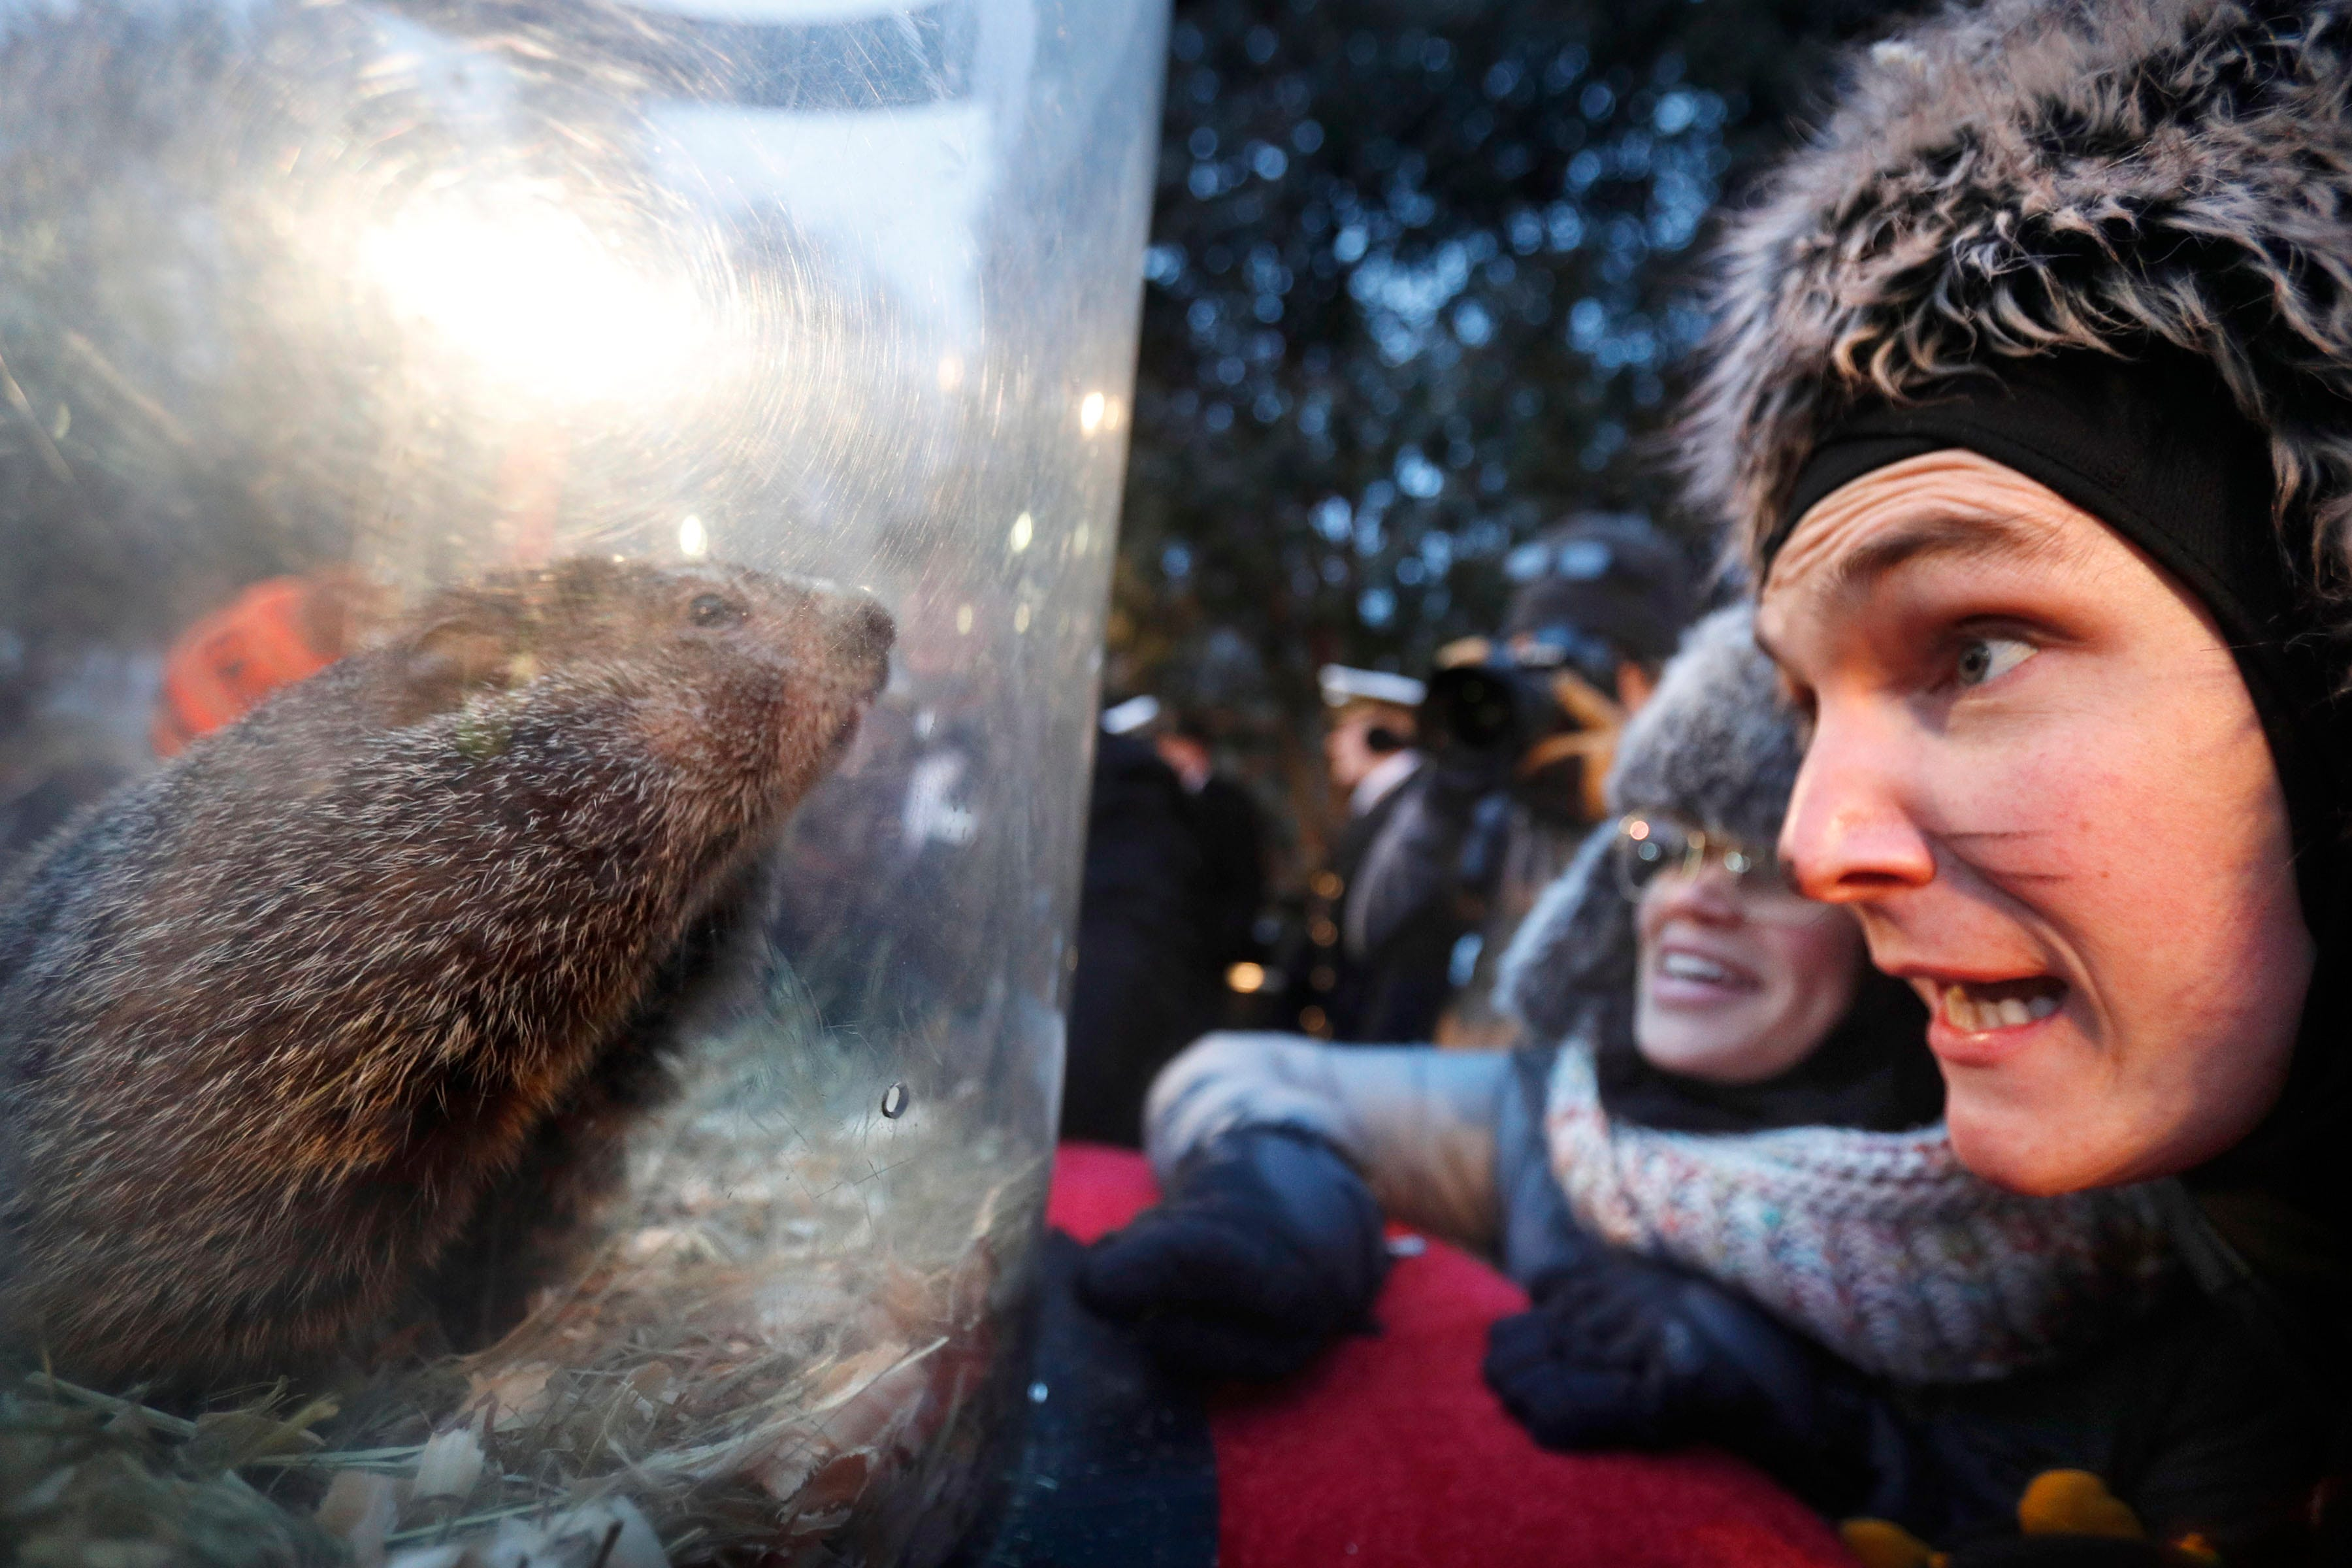 Visitors to Gobblers Knob greet Punxsutawney Phil after he made his prediction during the Groundhog Day celebration at Gobblers Knob in Punxsutawney, Pa. on Feb. 2, 2019. The Groundhog did not see his shadow, and predicted an early spring.